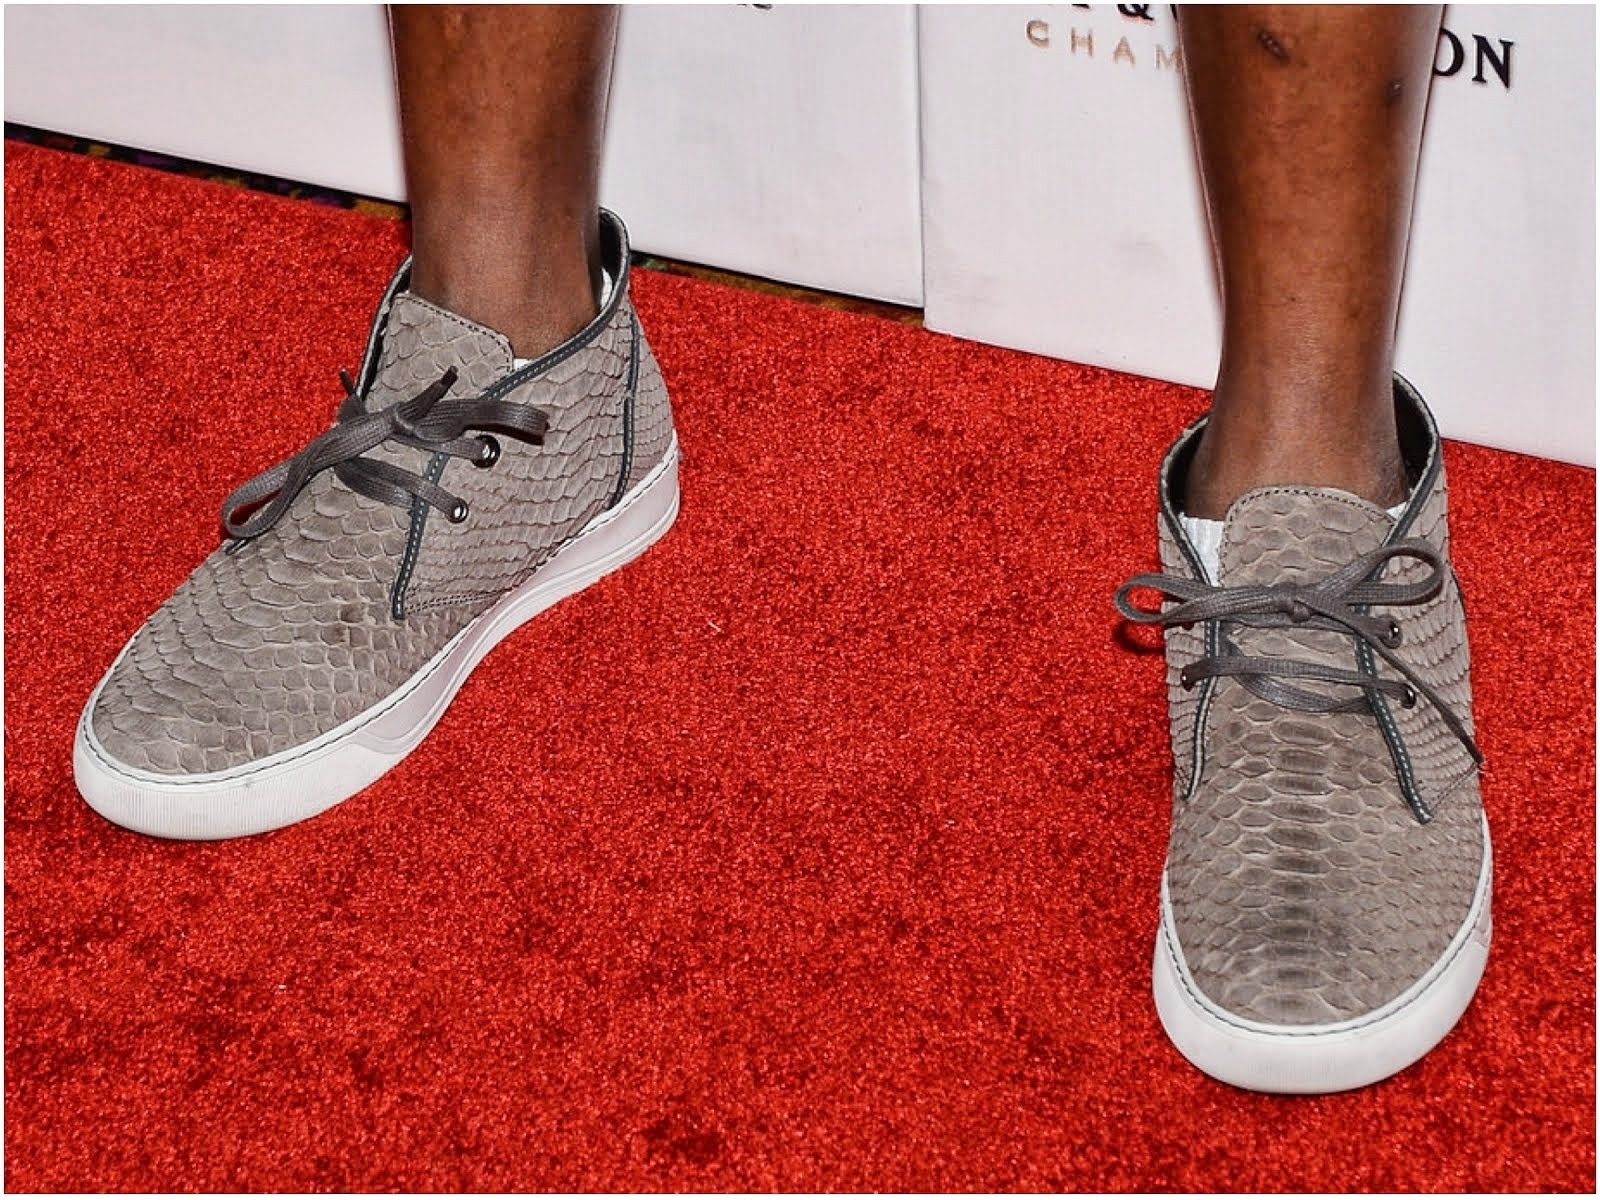 00O00 Menswear Blog: Pharrell Williams's Lanvin python leather chukka boots - Pure Nightclub at Caesars Palace